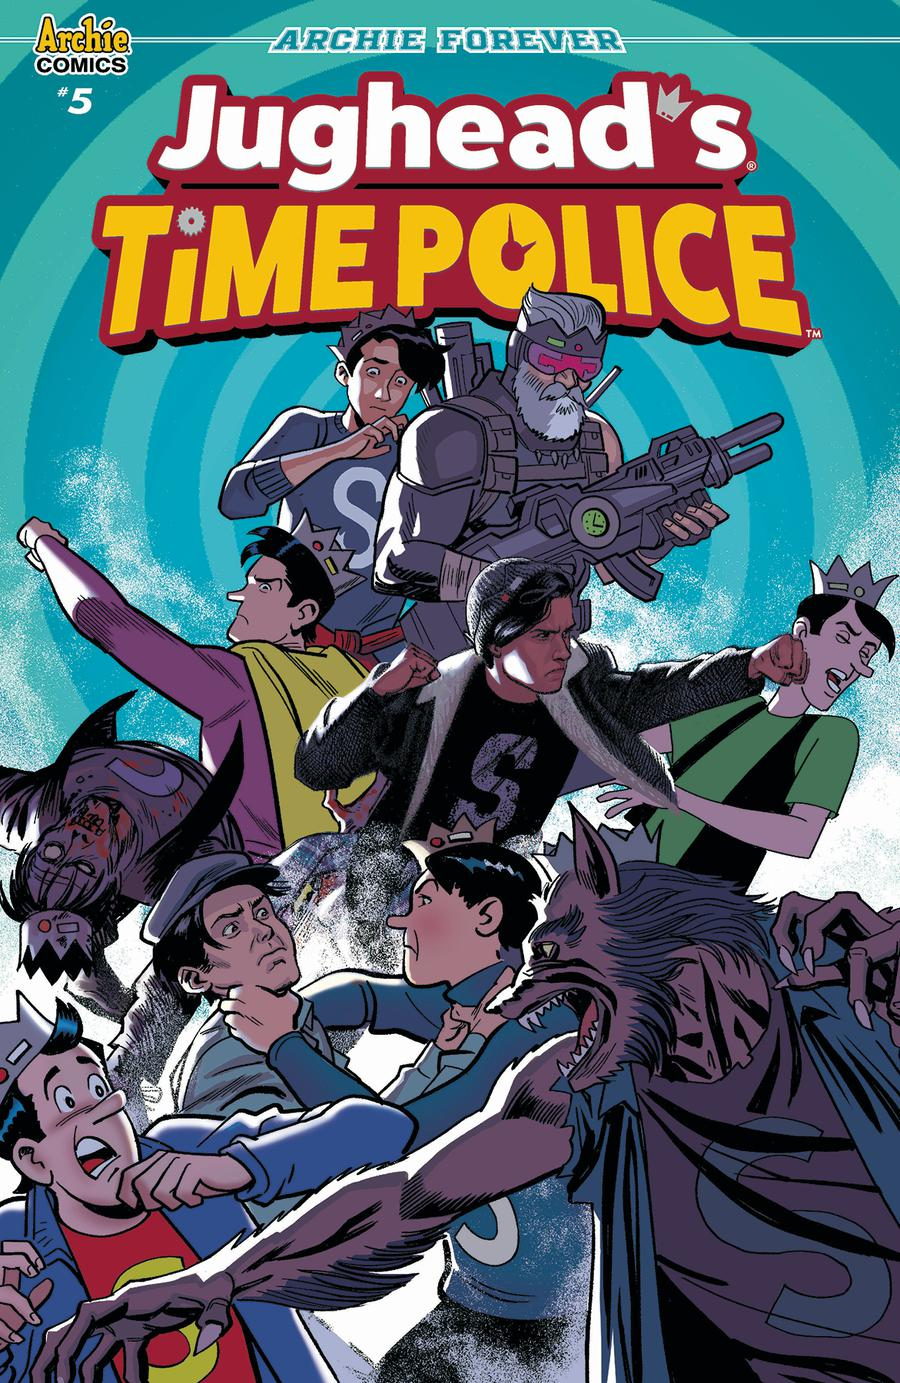 Jugheads Time Police Vol 2 #5 Cover C Variant Greg Smallwood Cover